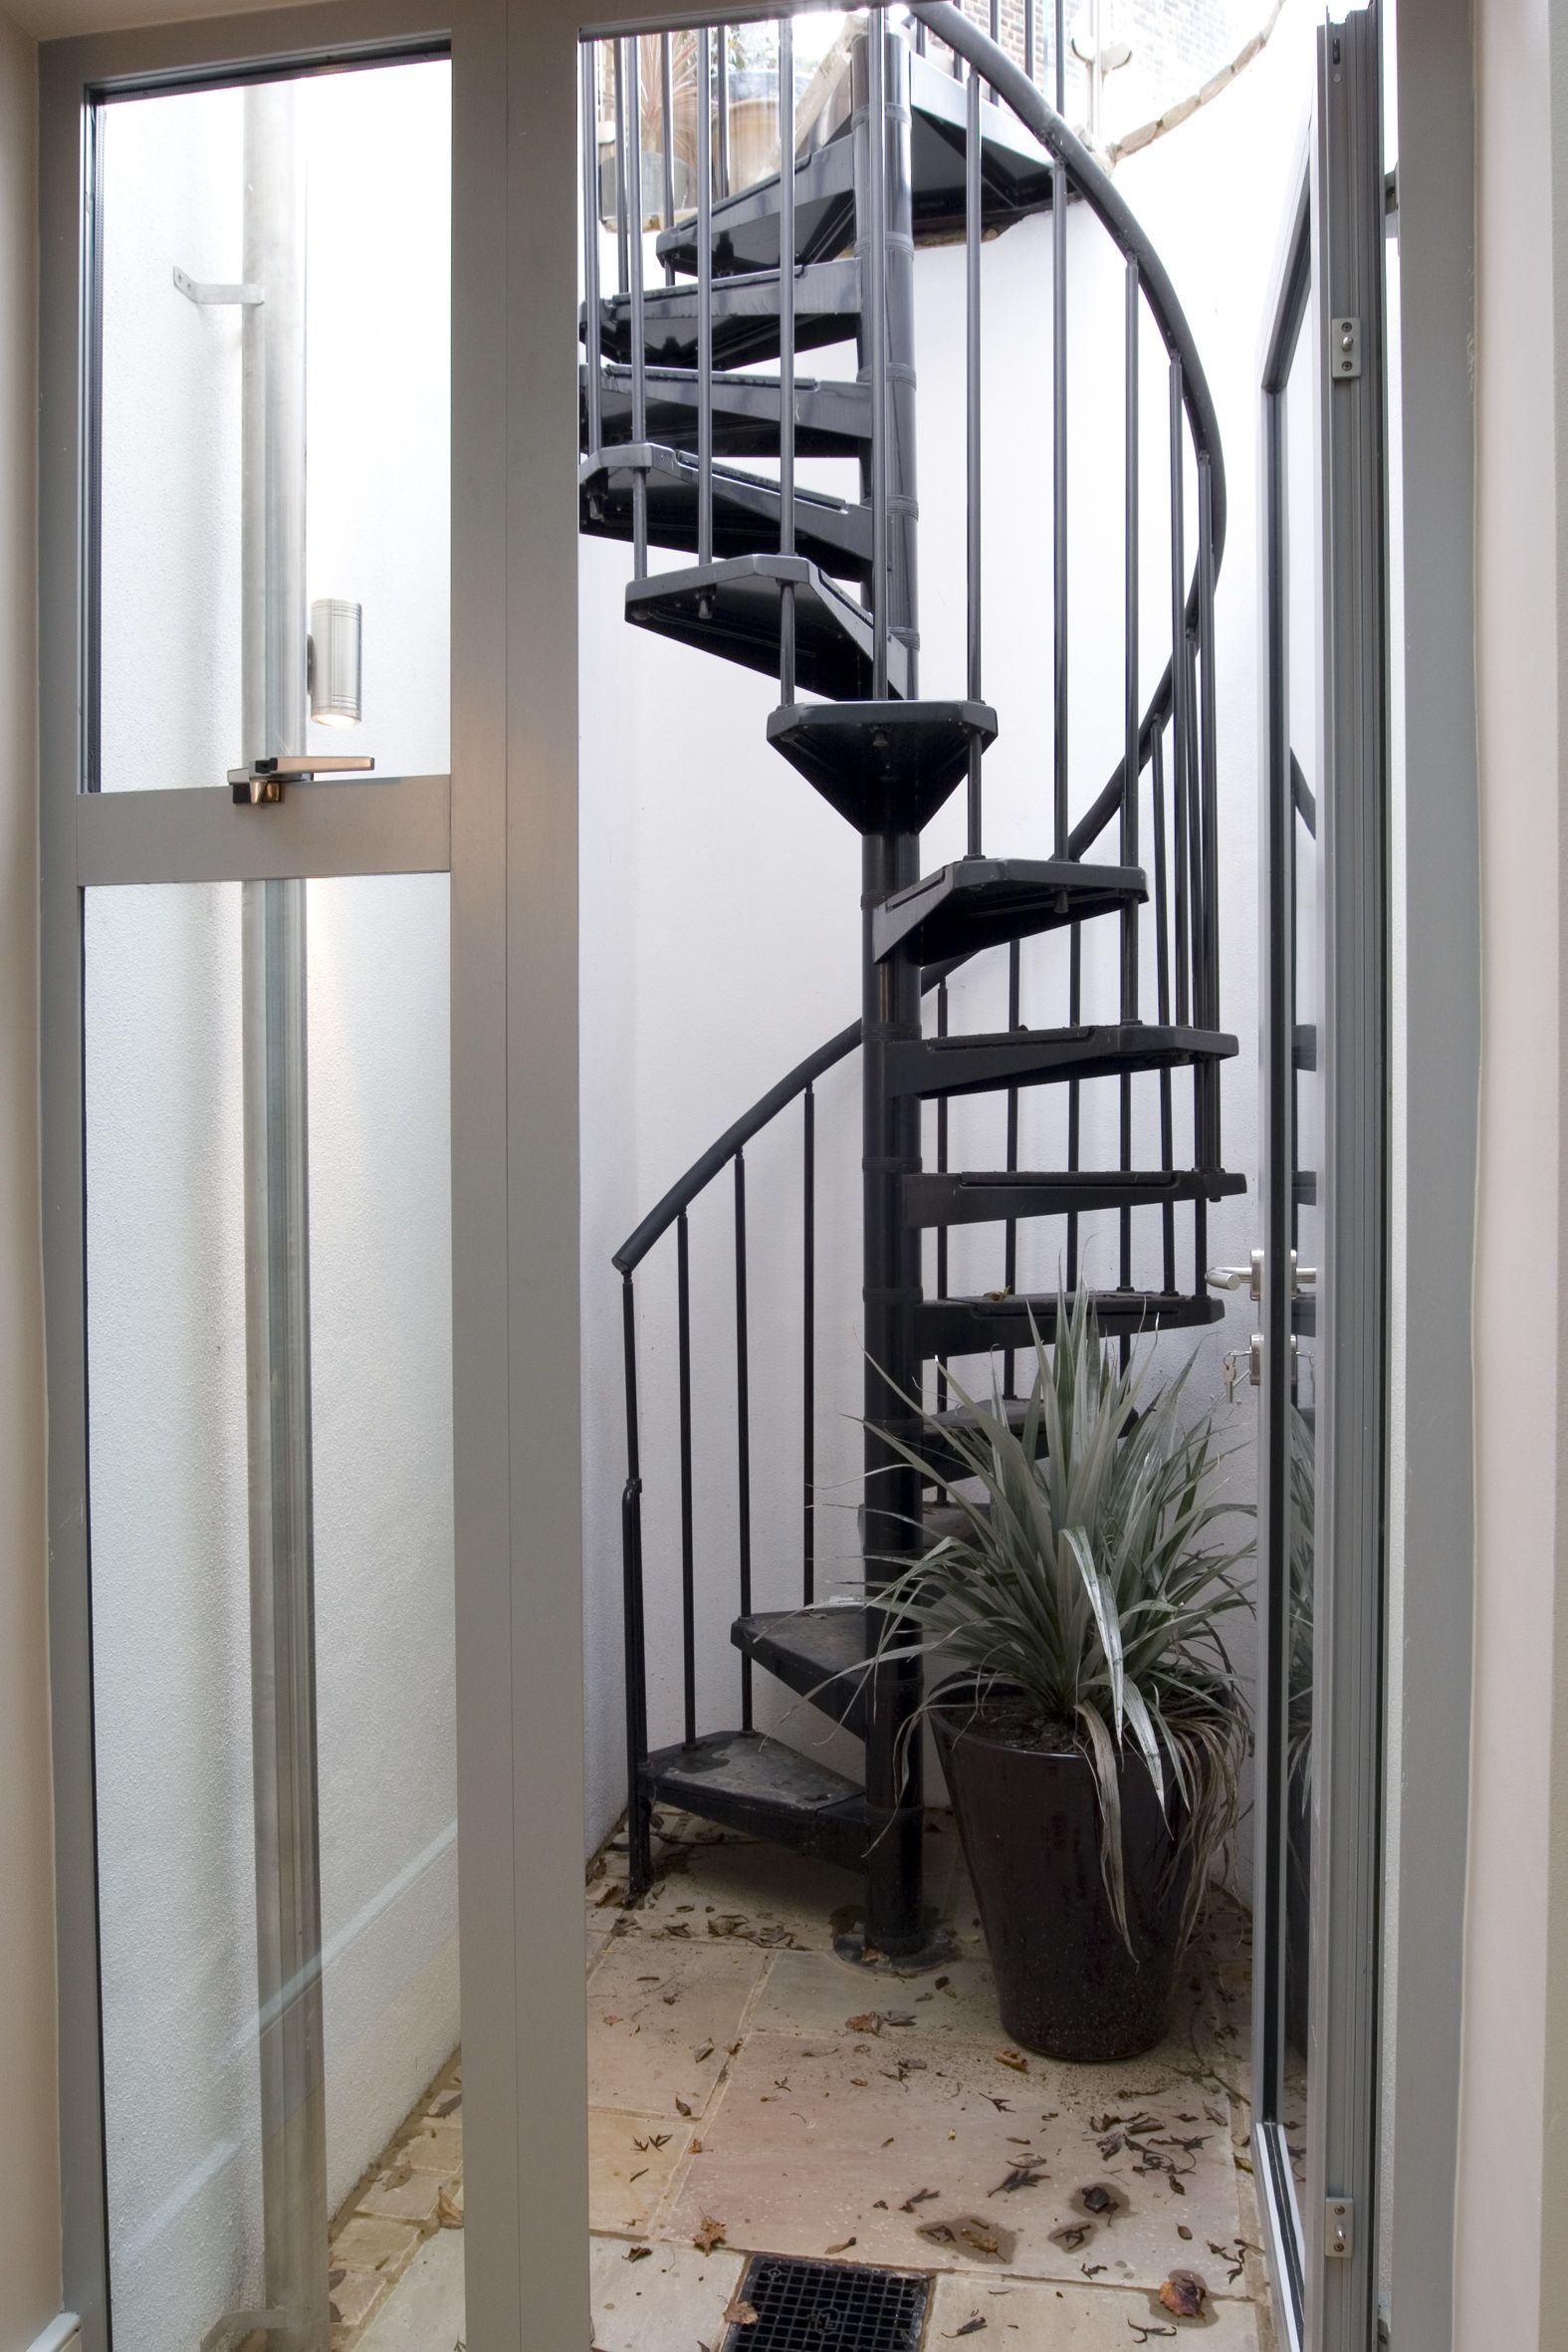 Spiral staircase from the basement to the rear garden